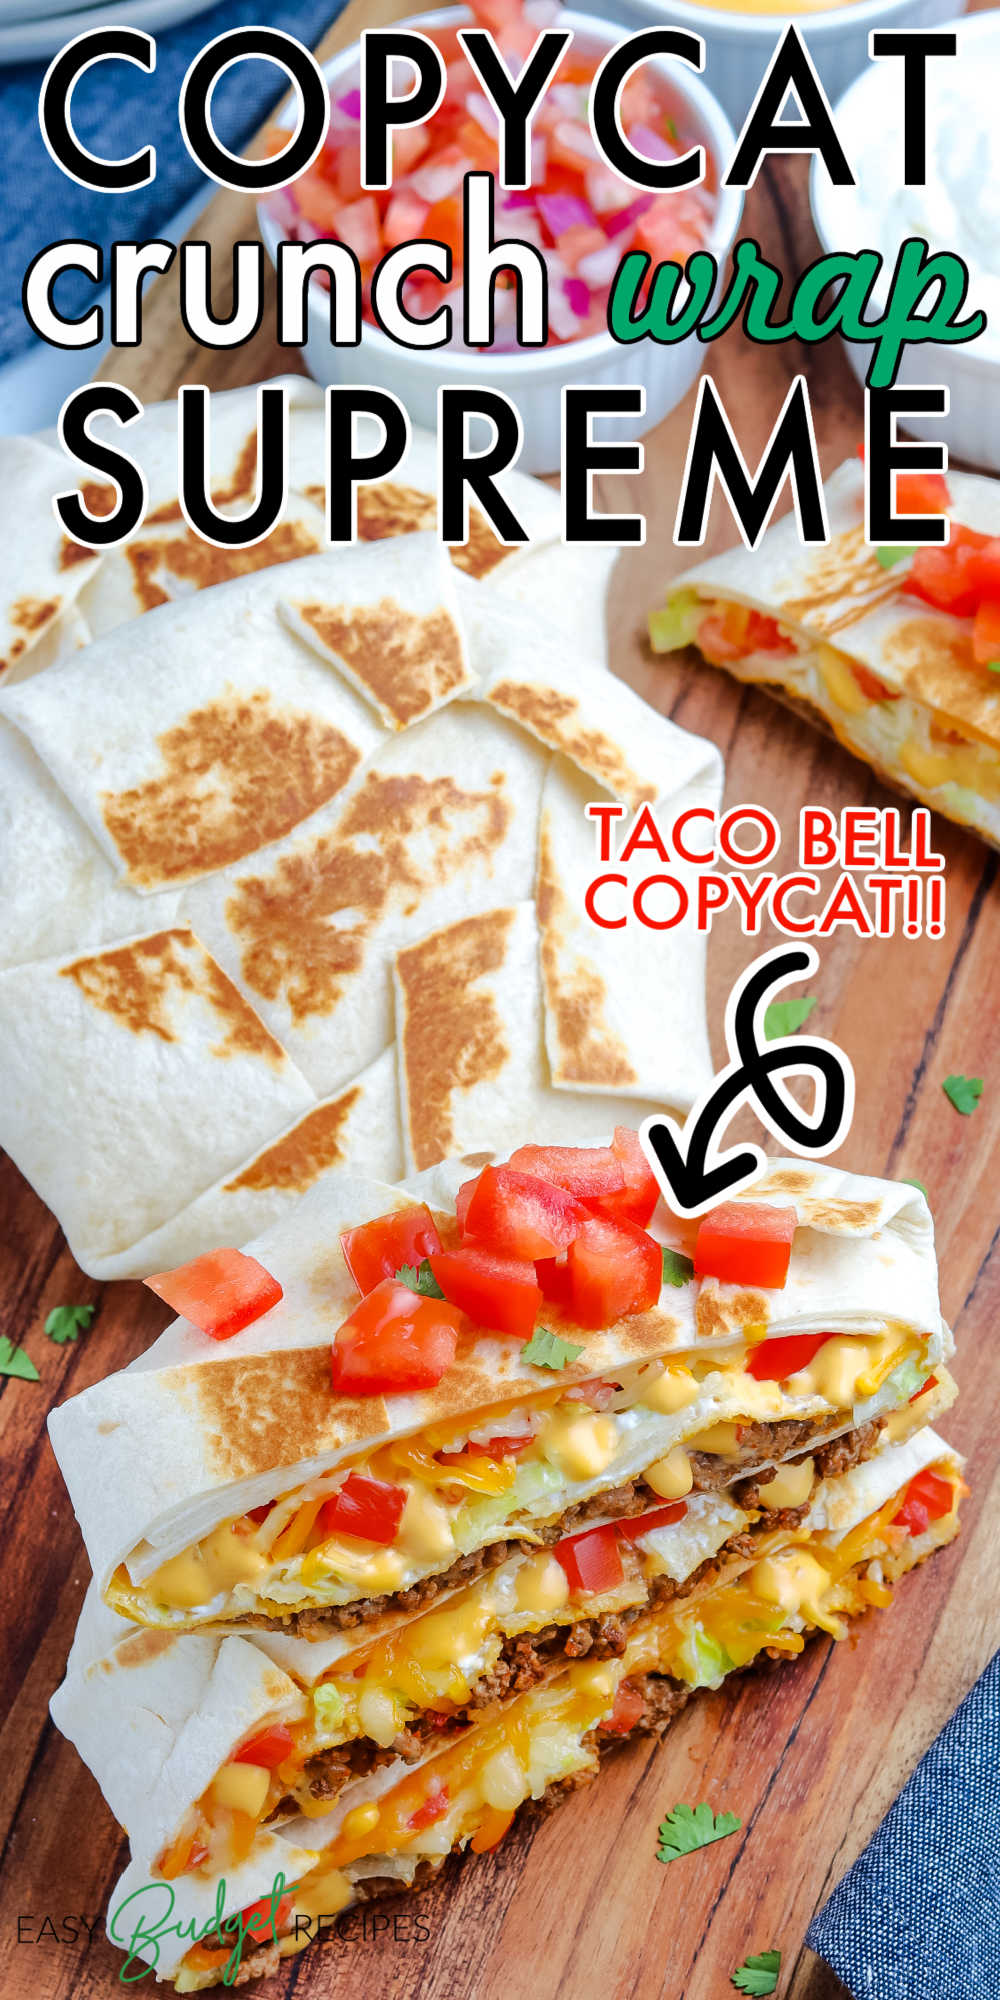 This Copycat Taco Bell Crunchwrap Supreme recipe is easy, delicious, and so much better than the original! Each is filled with taco meat, nacho cheese, sour cream, lettuce, tomatoes, shredded cheese, and a tostada to give its signature crunch!  via @easybudgetrecipes